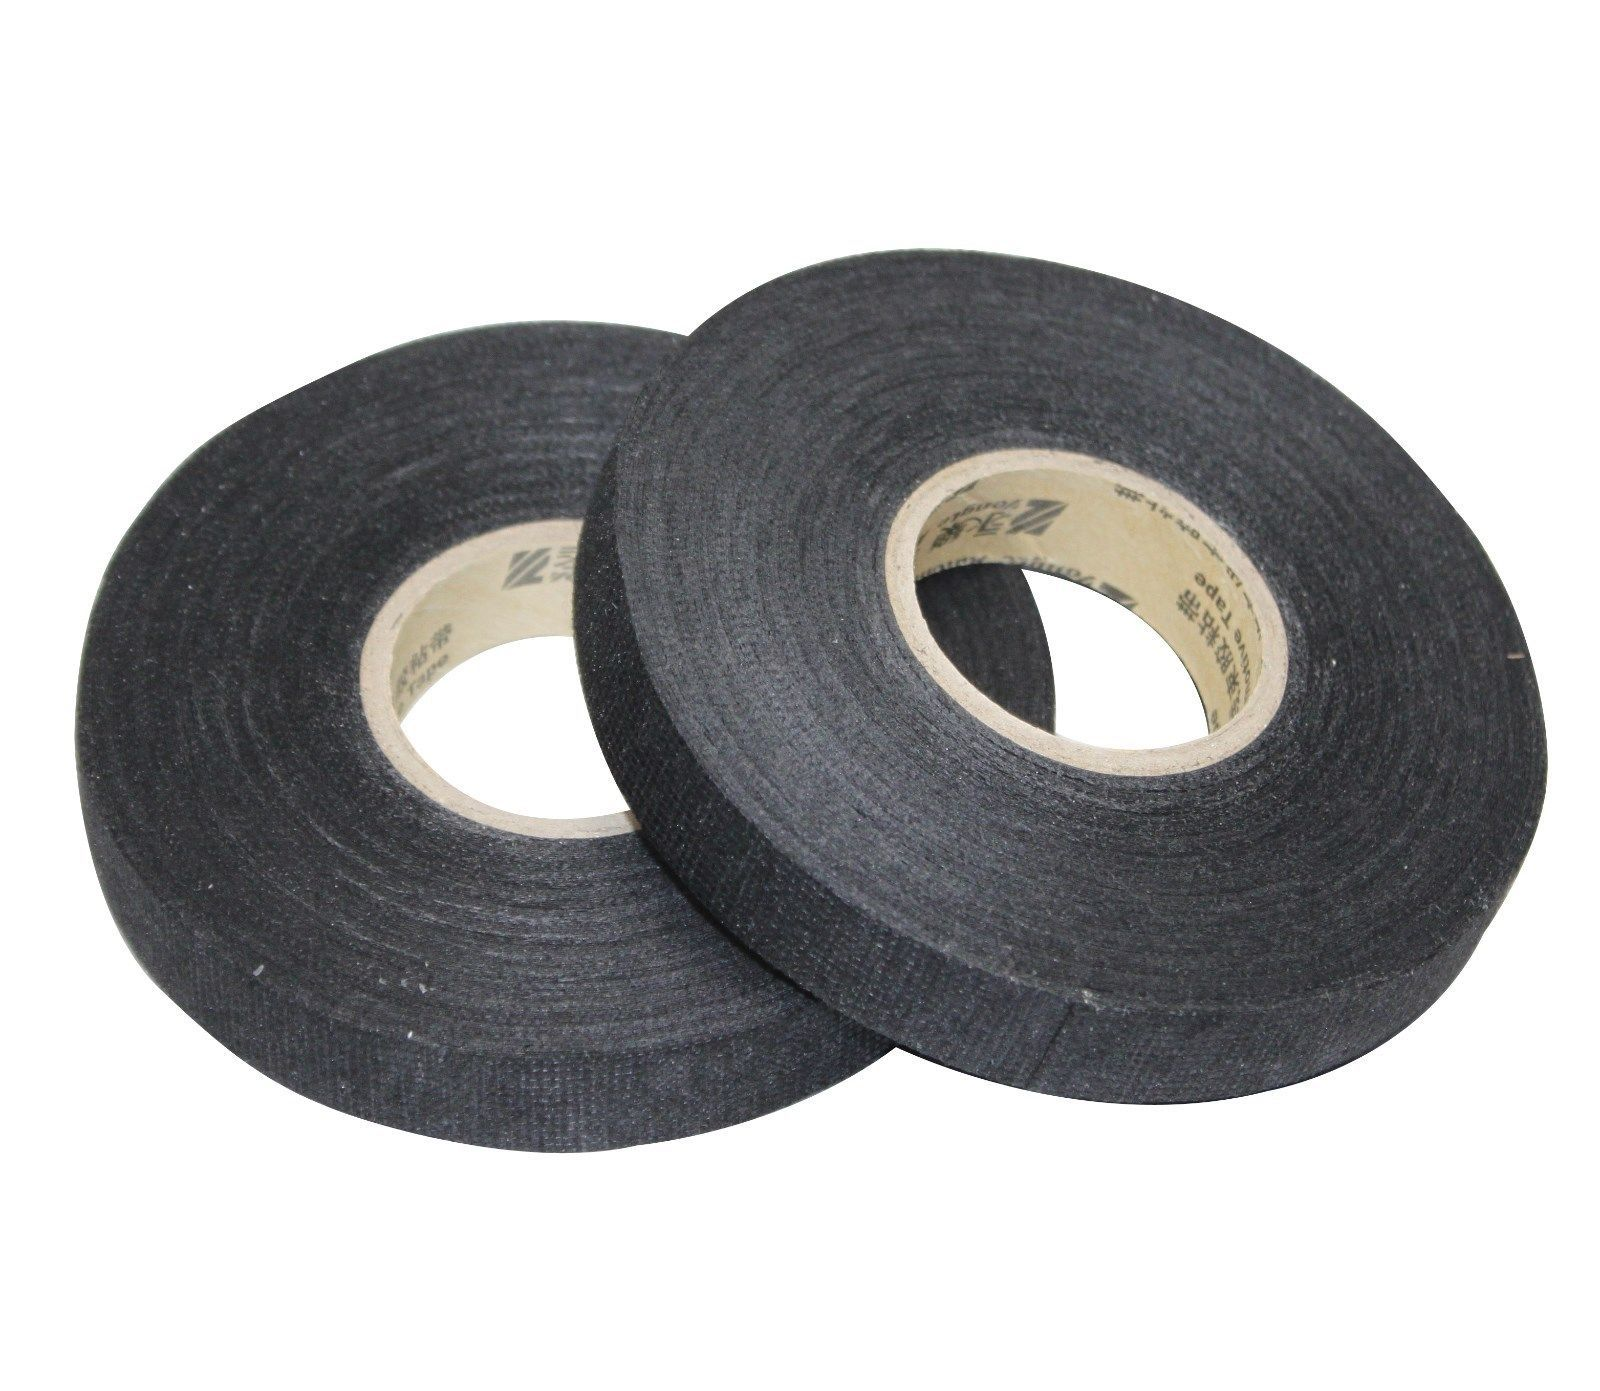 Primary image for APS 2PCS 15mm x 25m 2-pack of Adhesive Cloth Fabric Tape for wiring harnesses